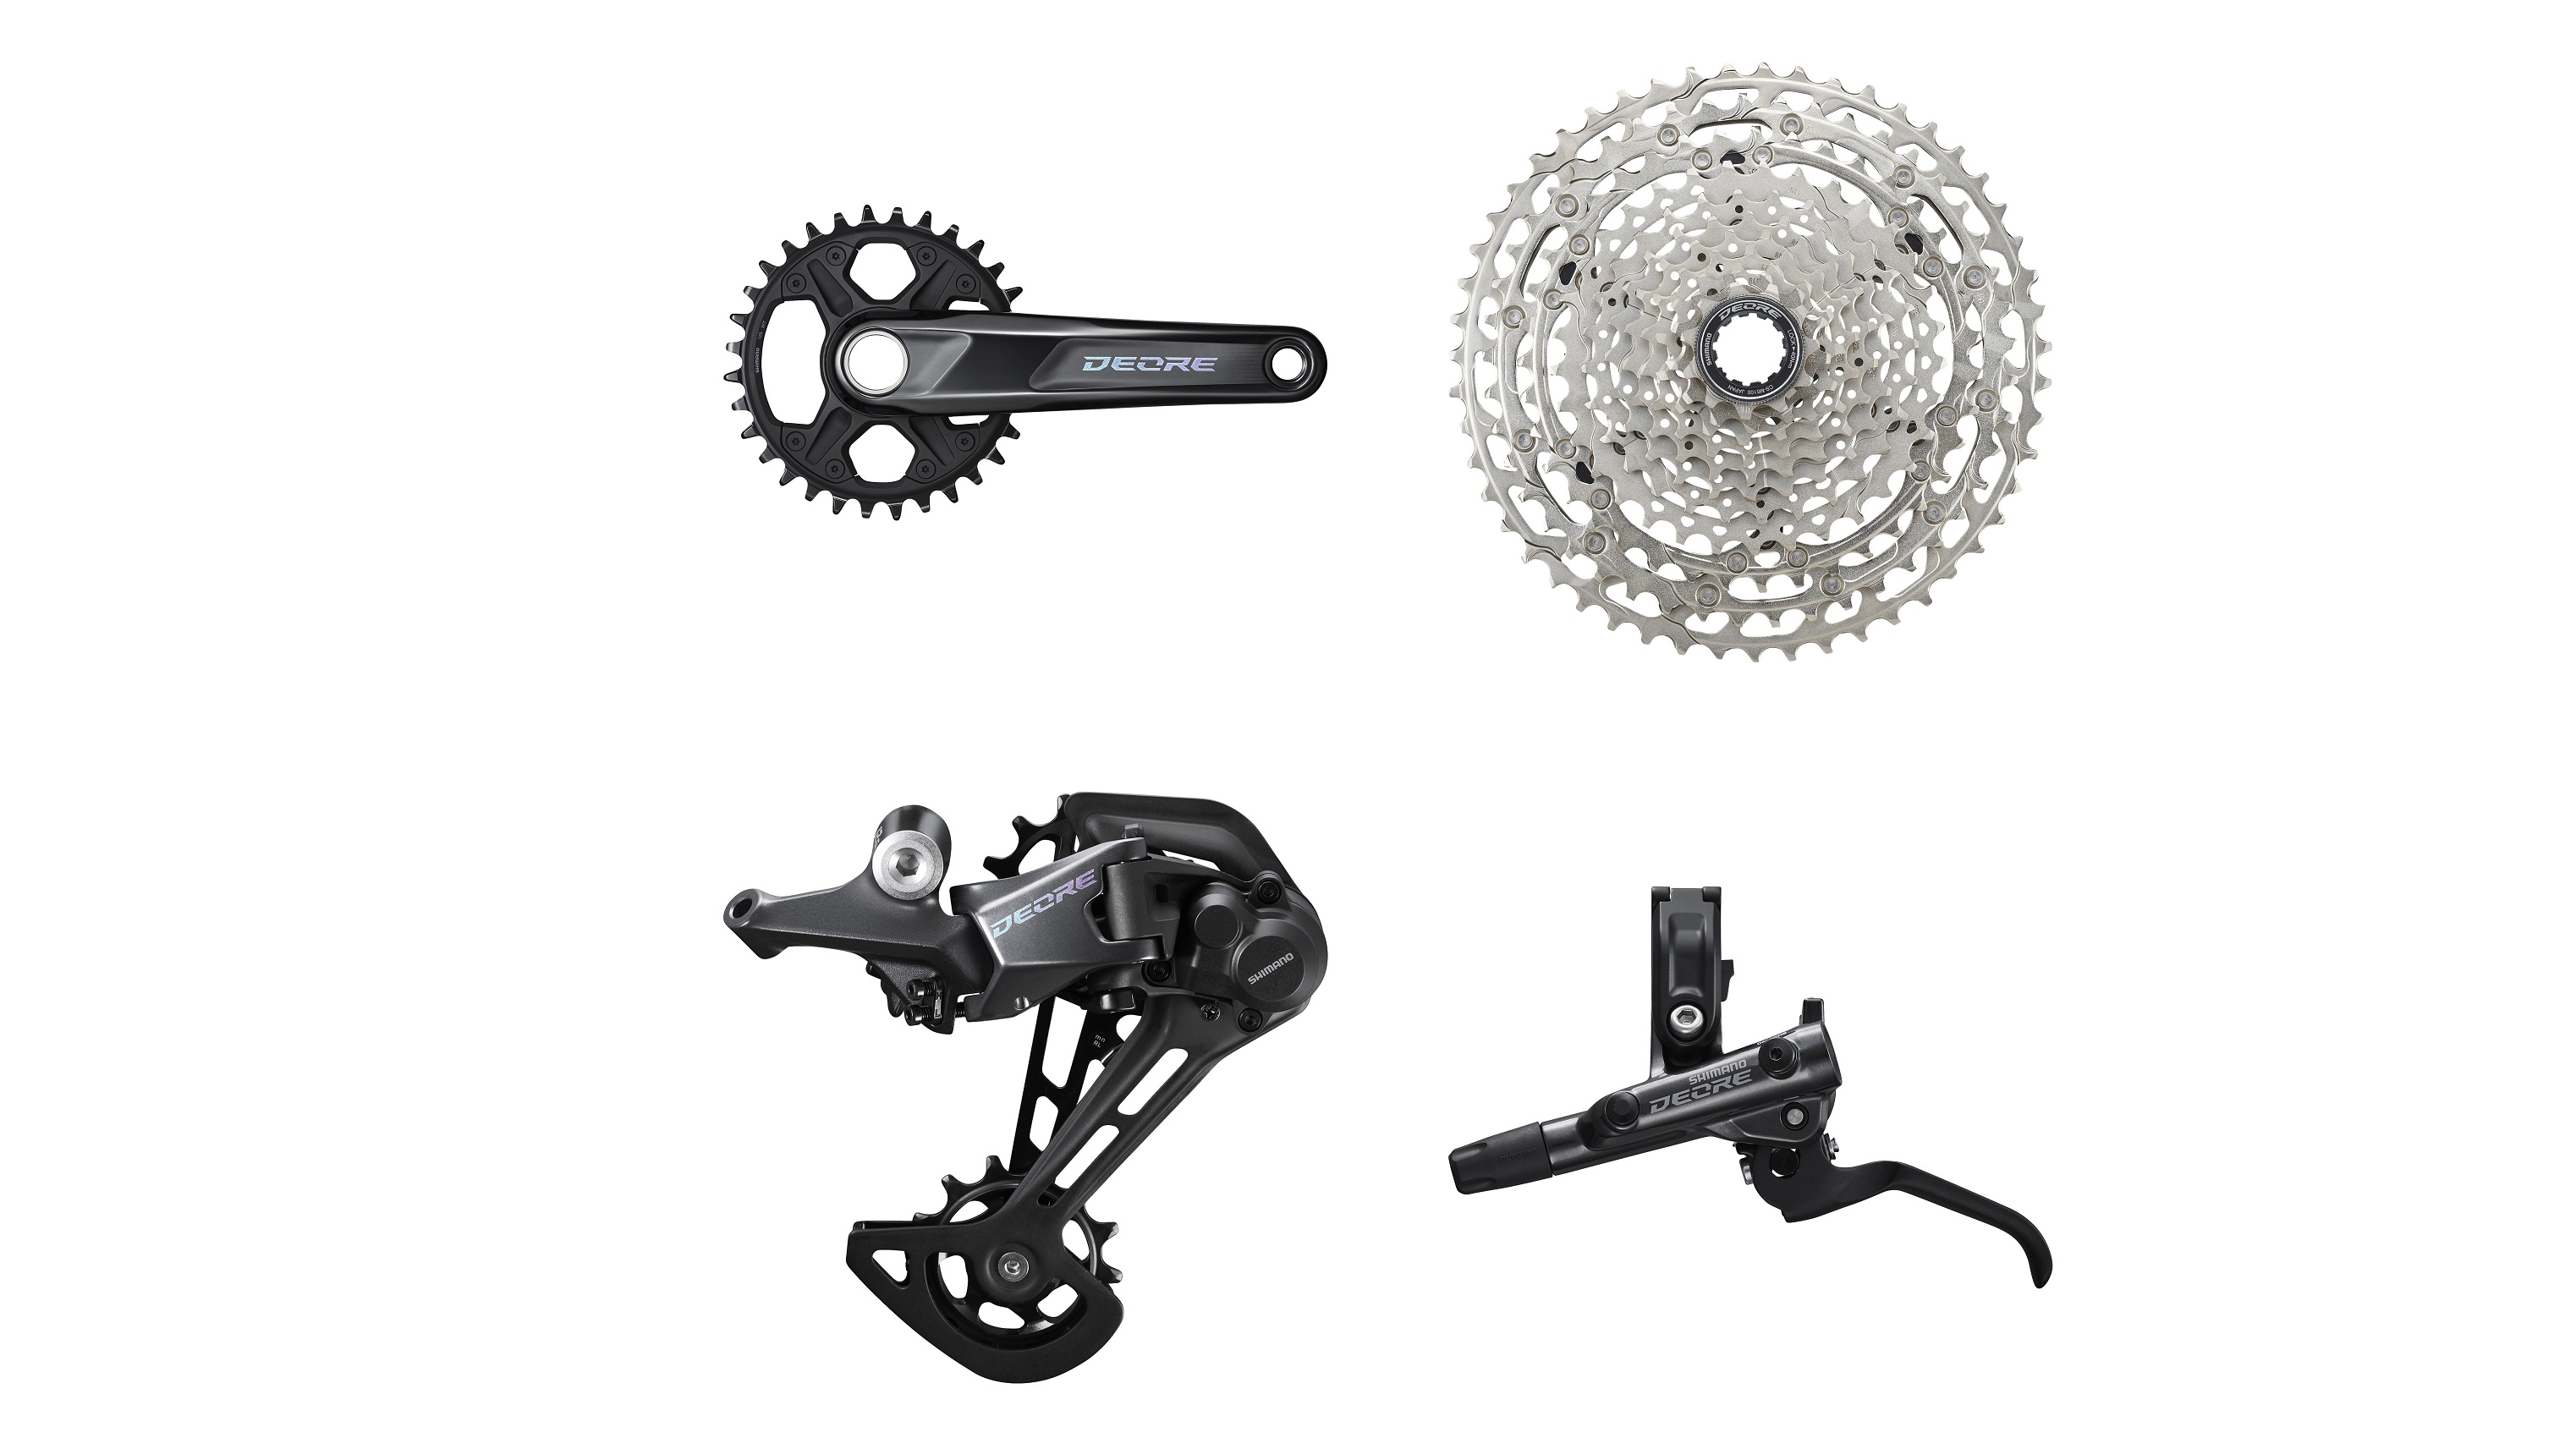 Shimano Deore gains 12 gears and better brakes